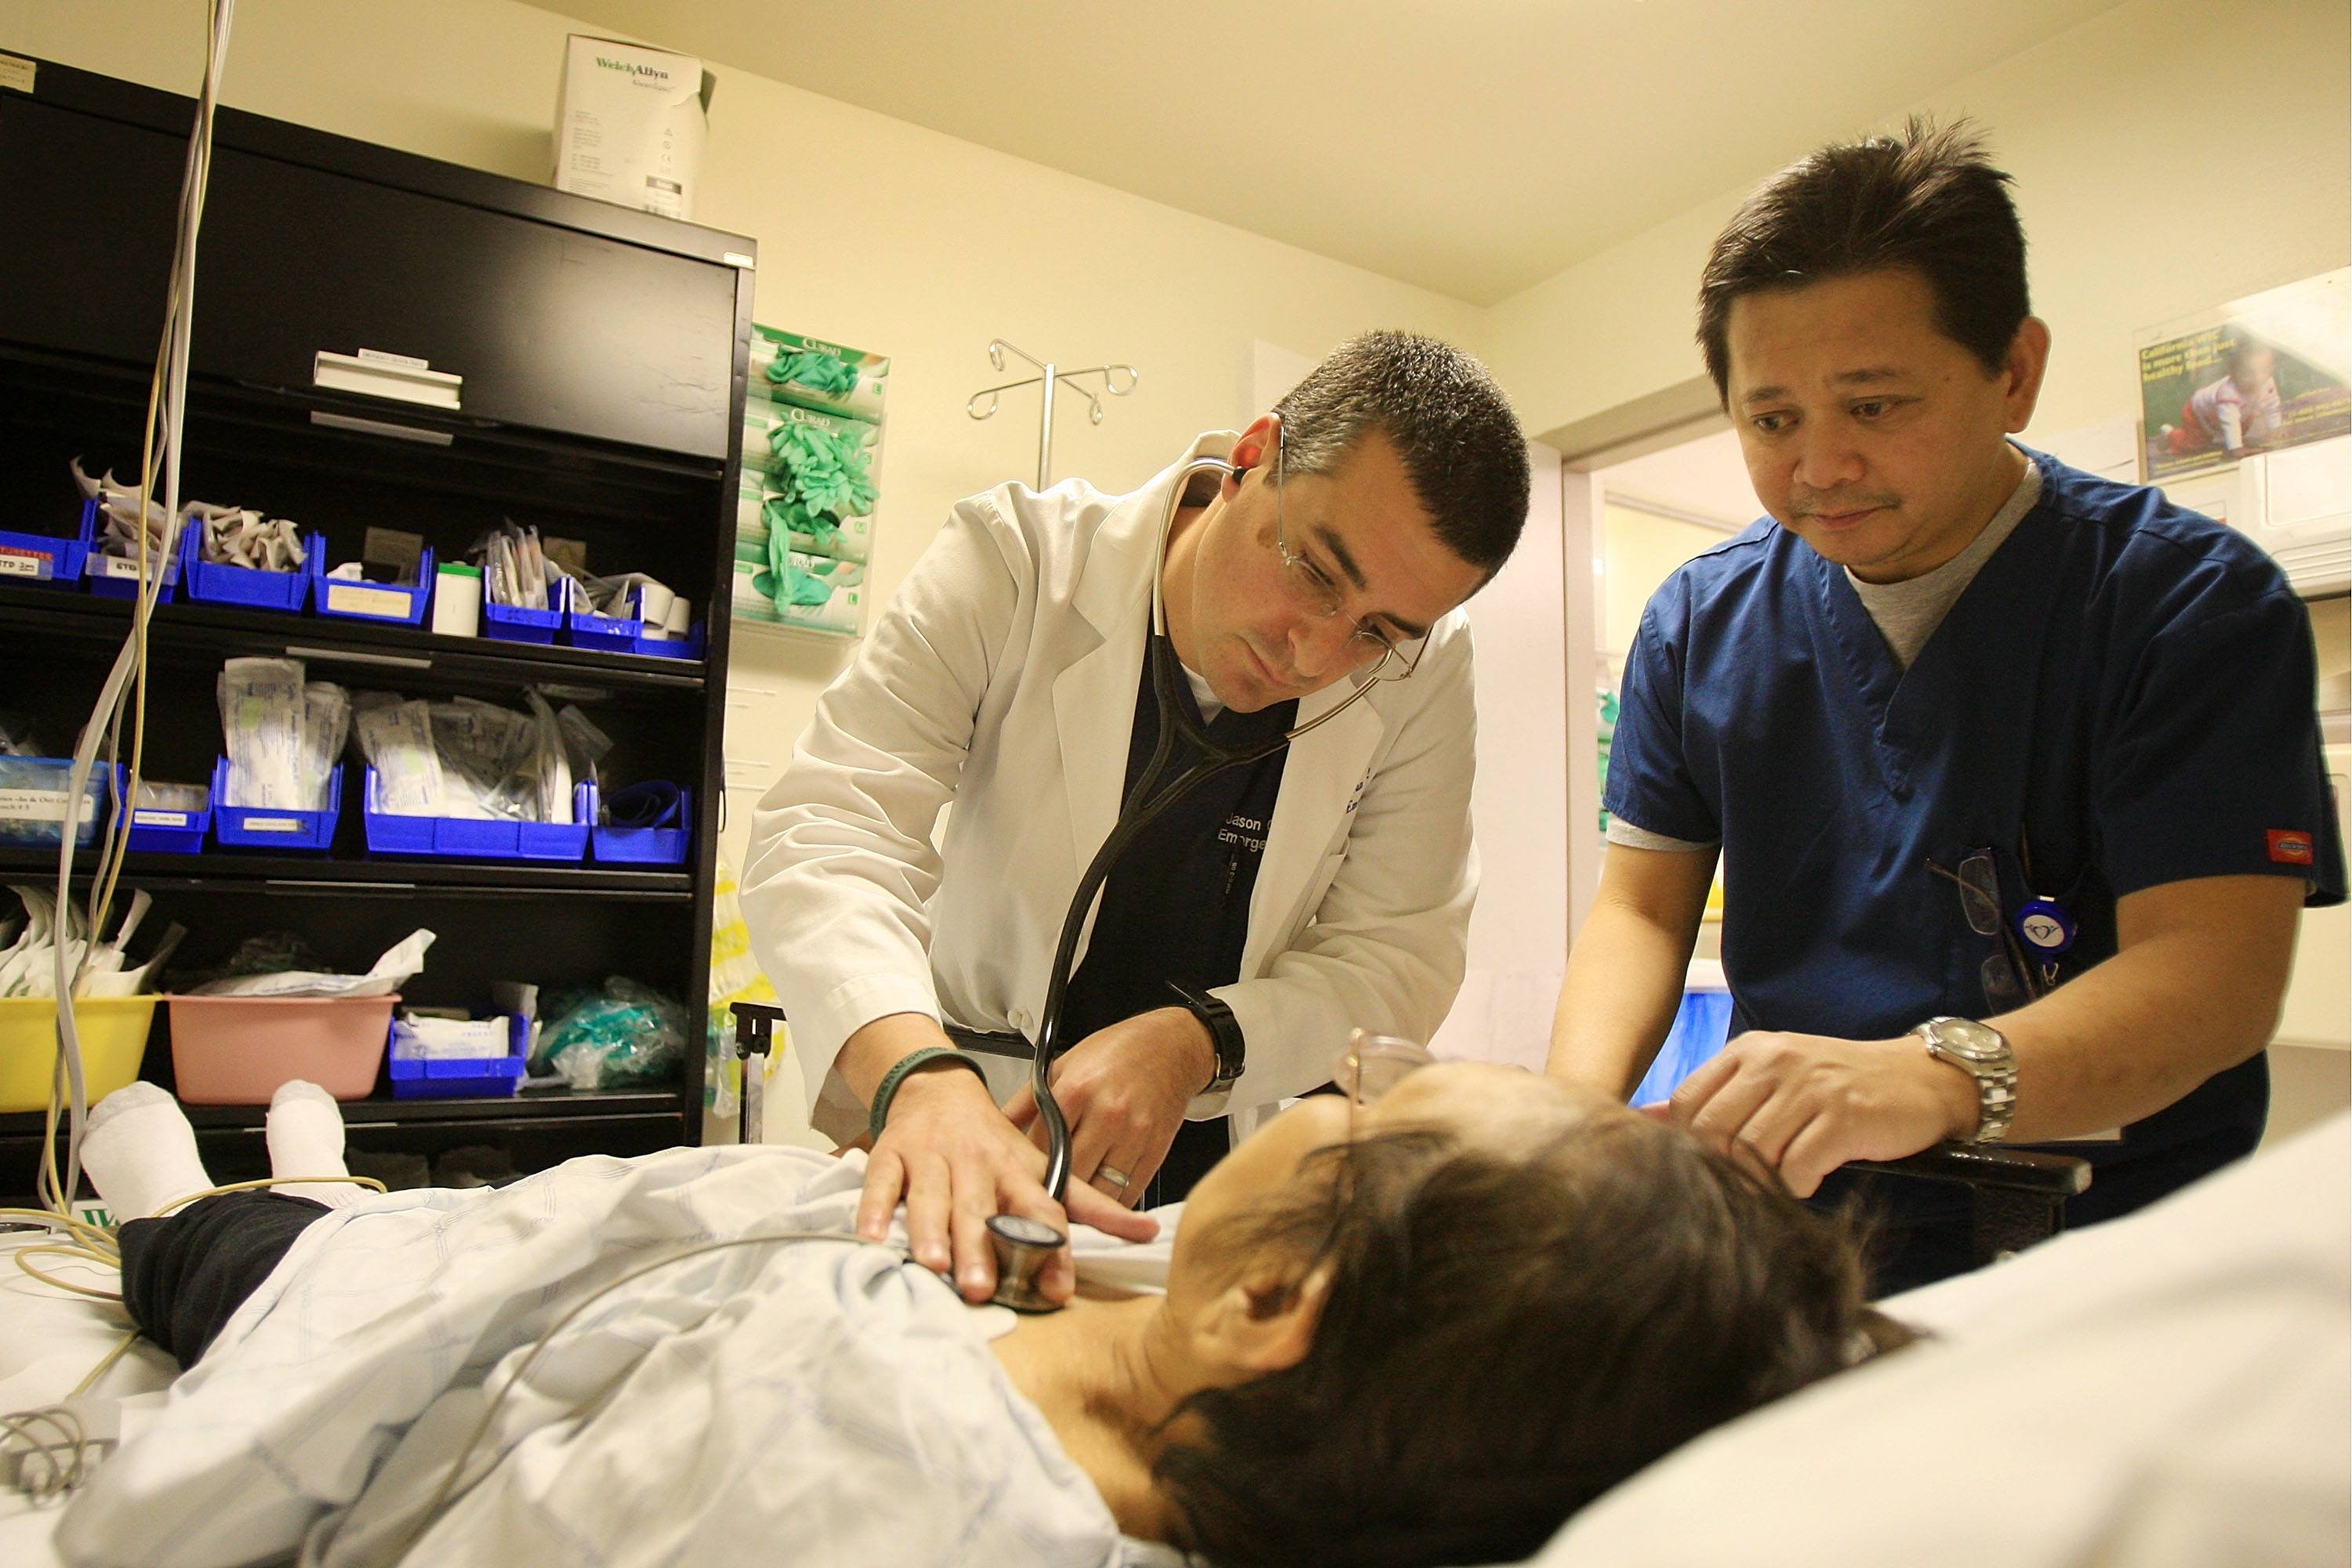 Health care workers care for a patient in the ER